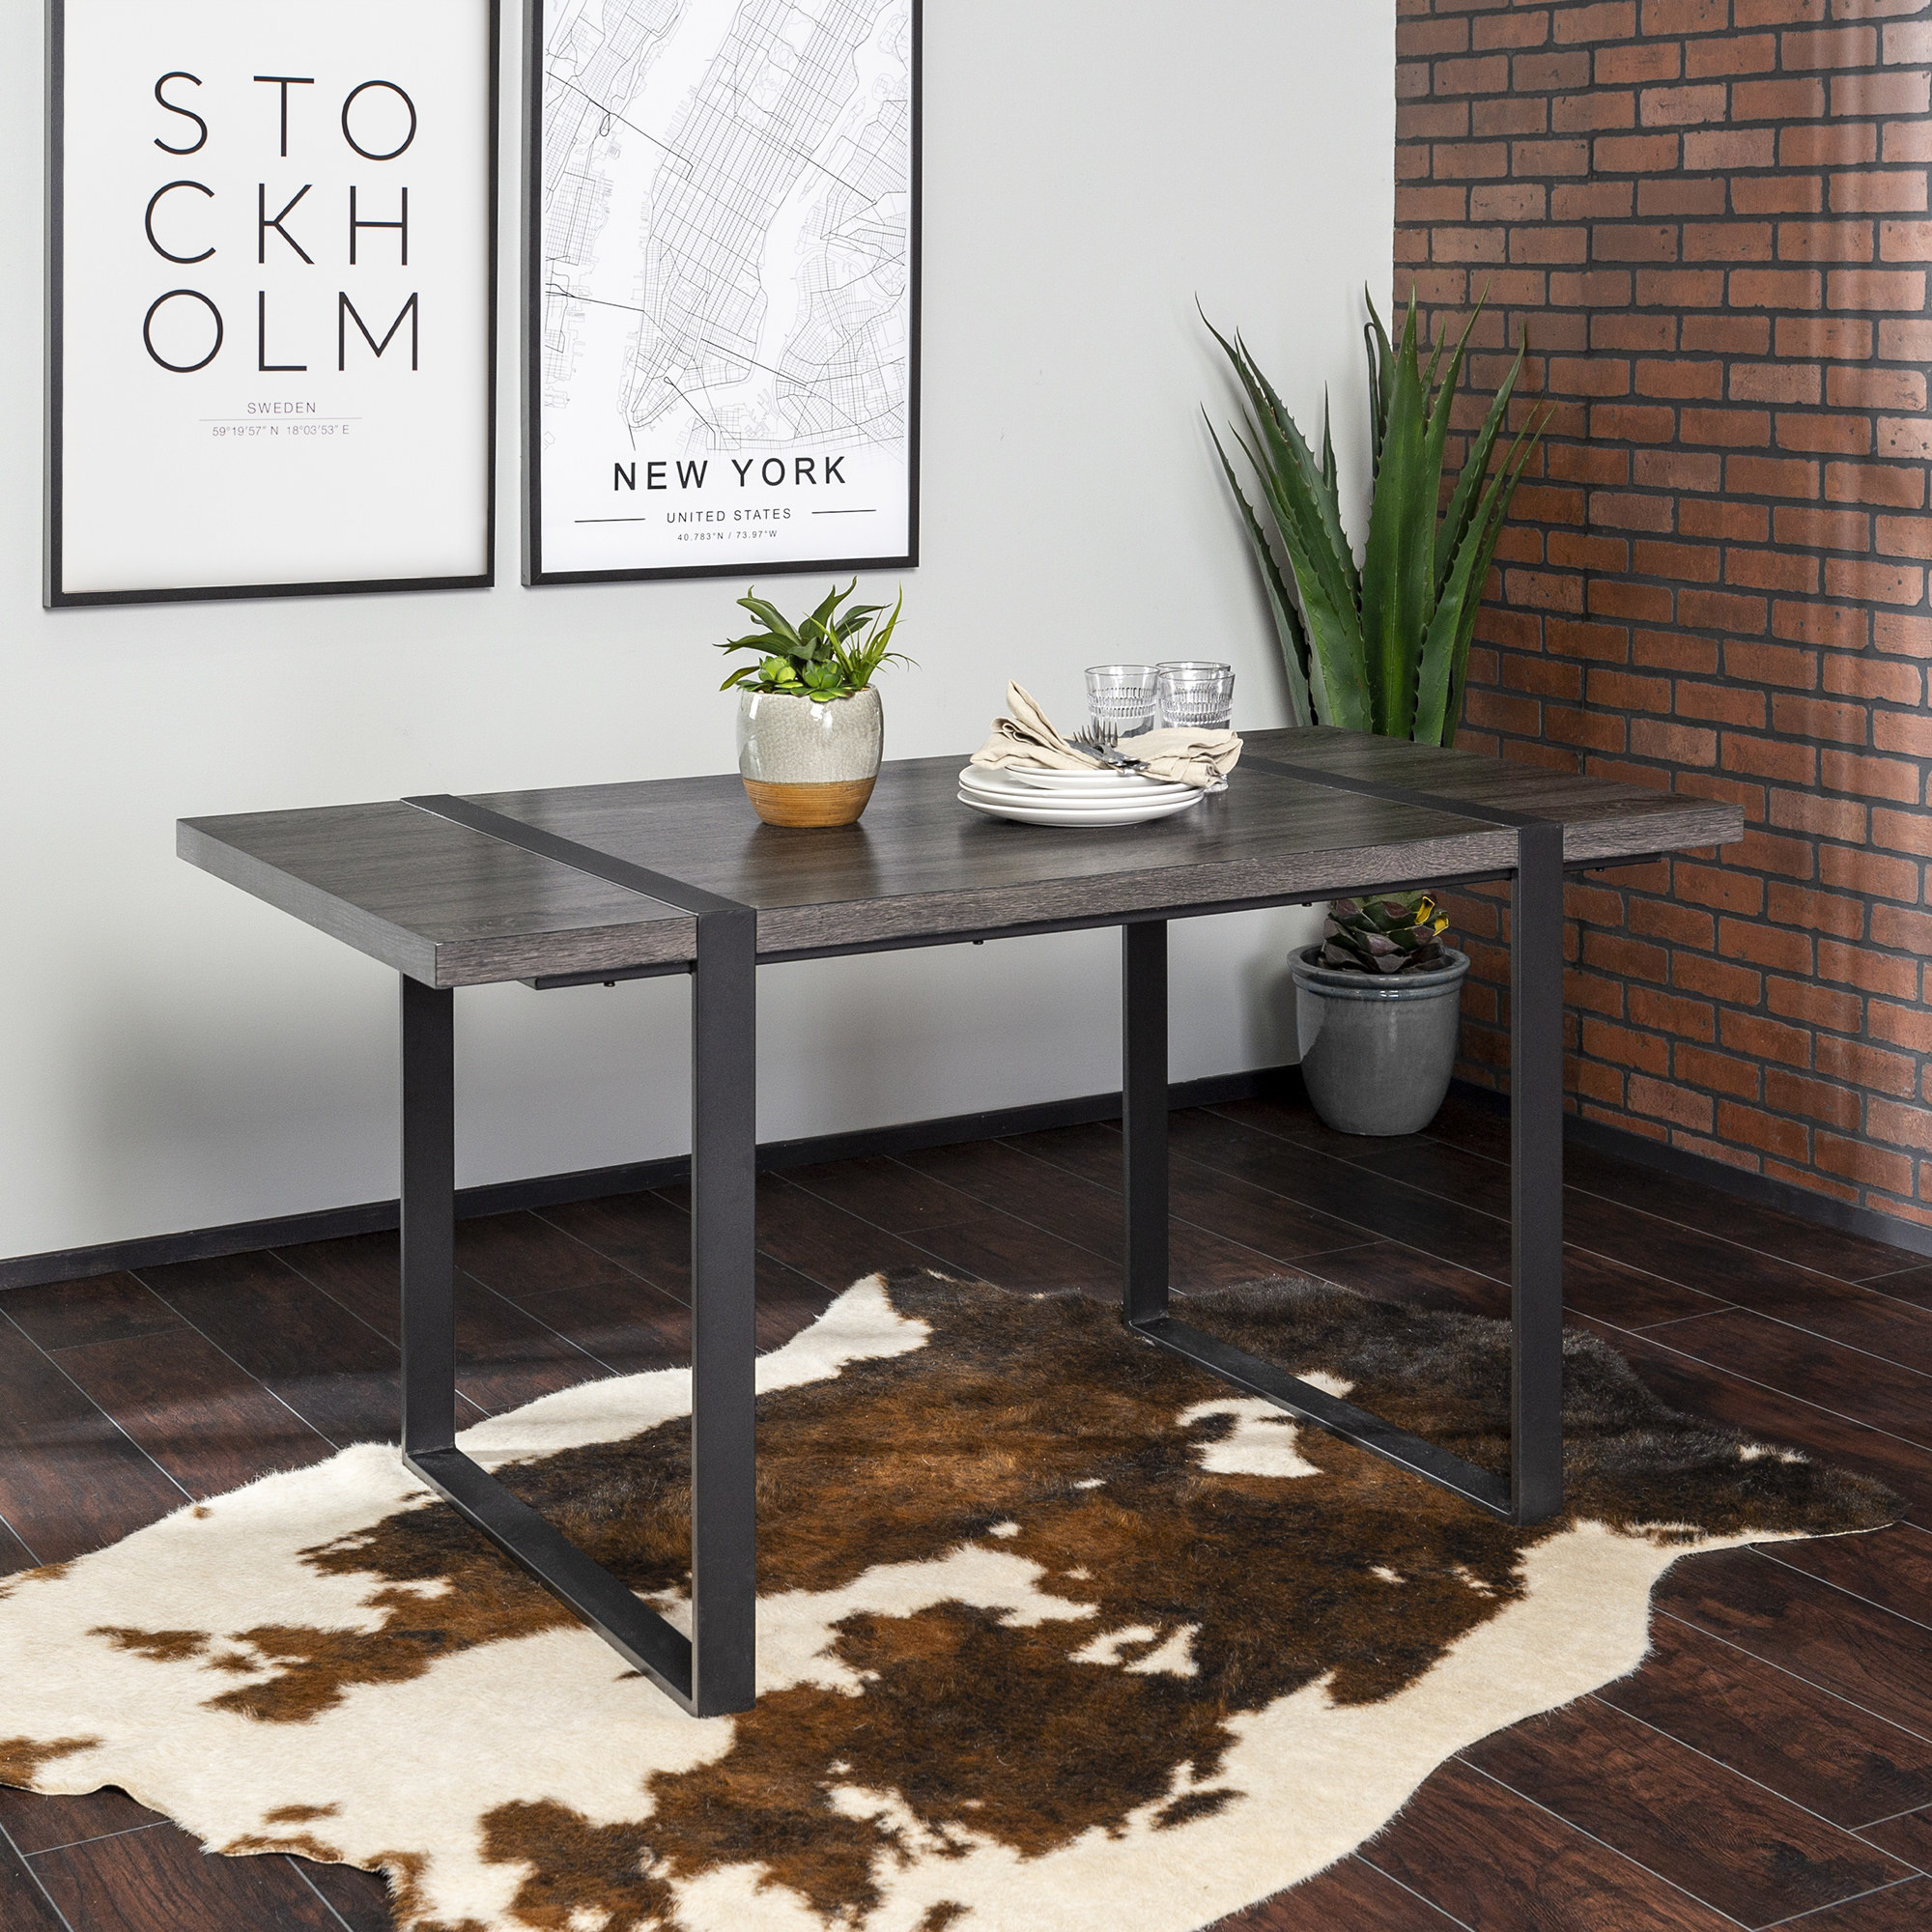 The grey table with metal legs